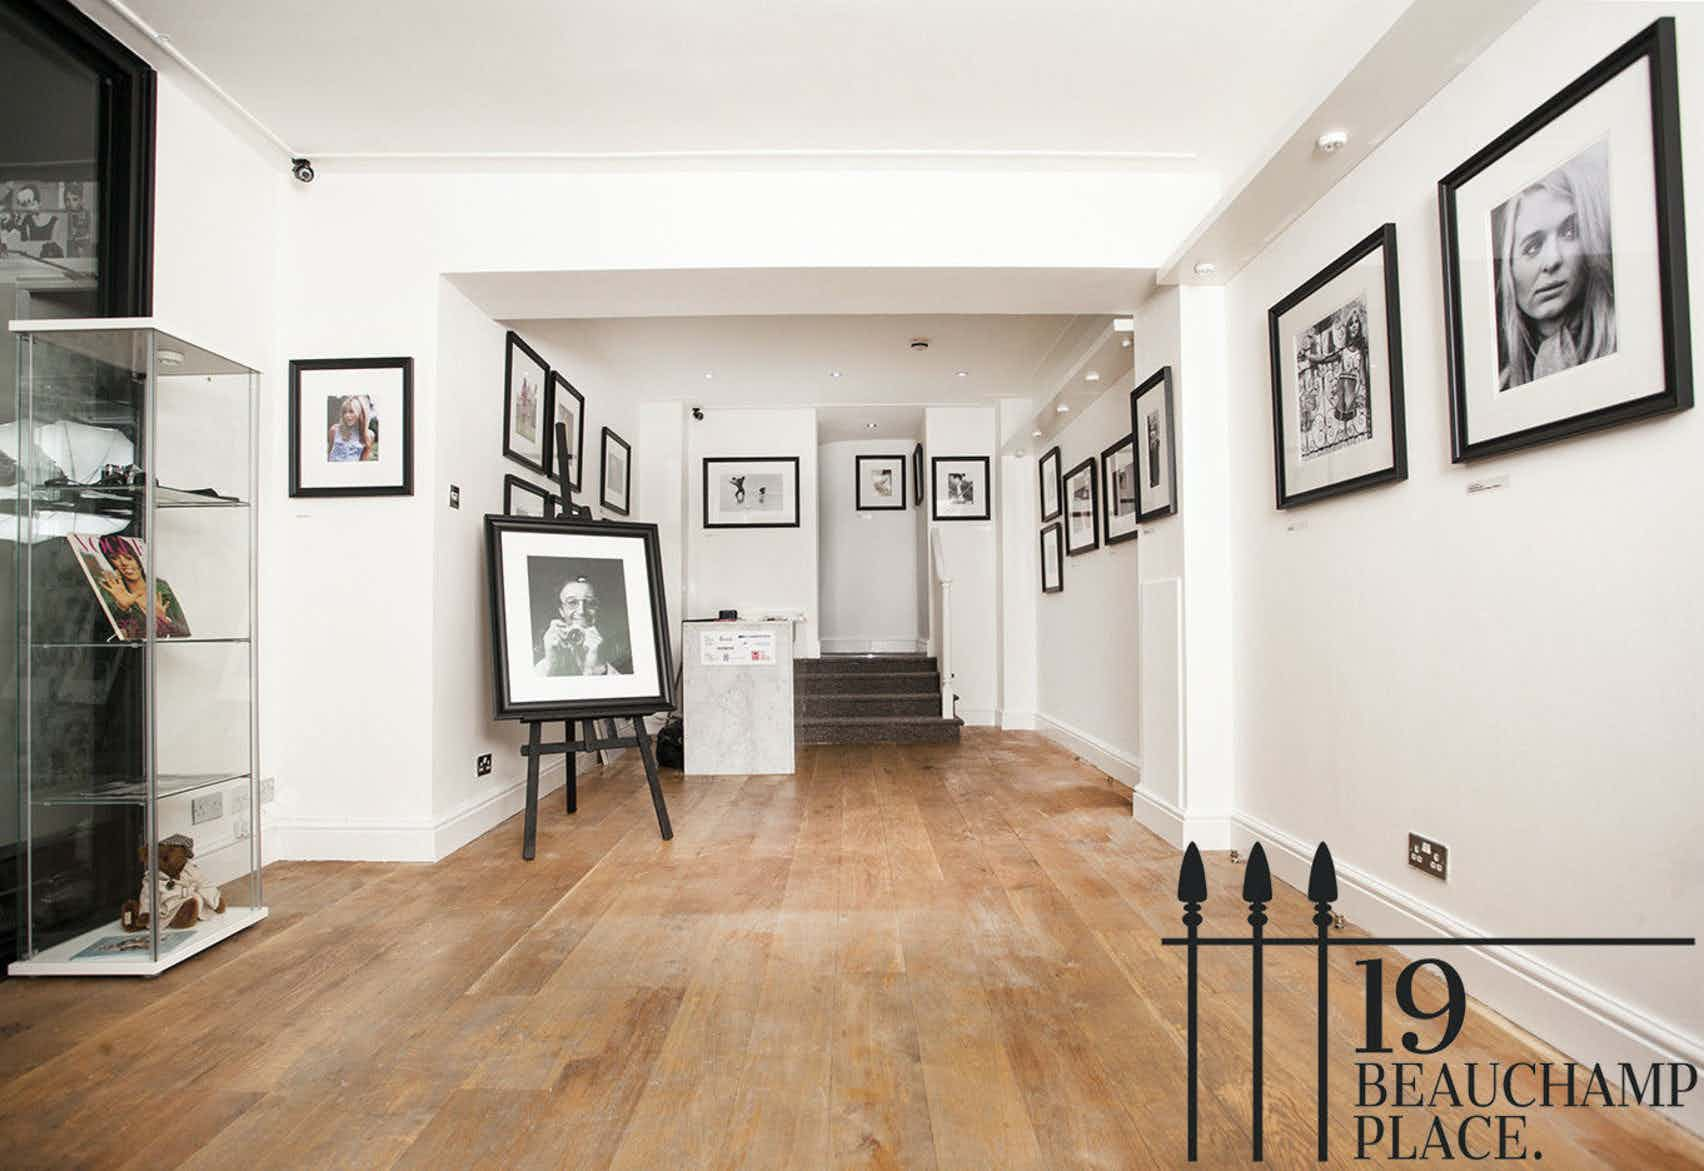 1st Floor Townhouse, 19 Beauchamp Place